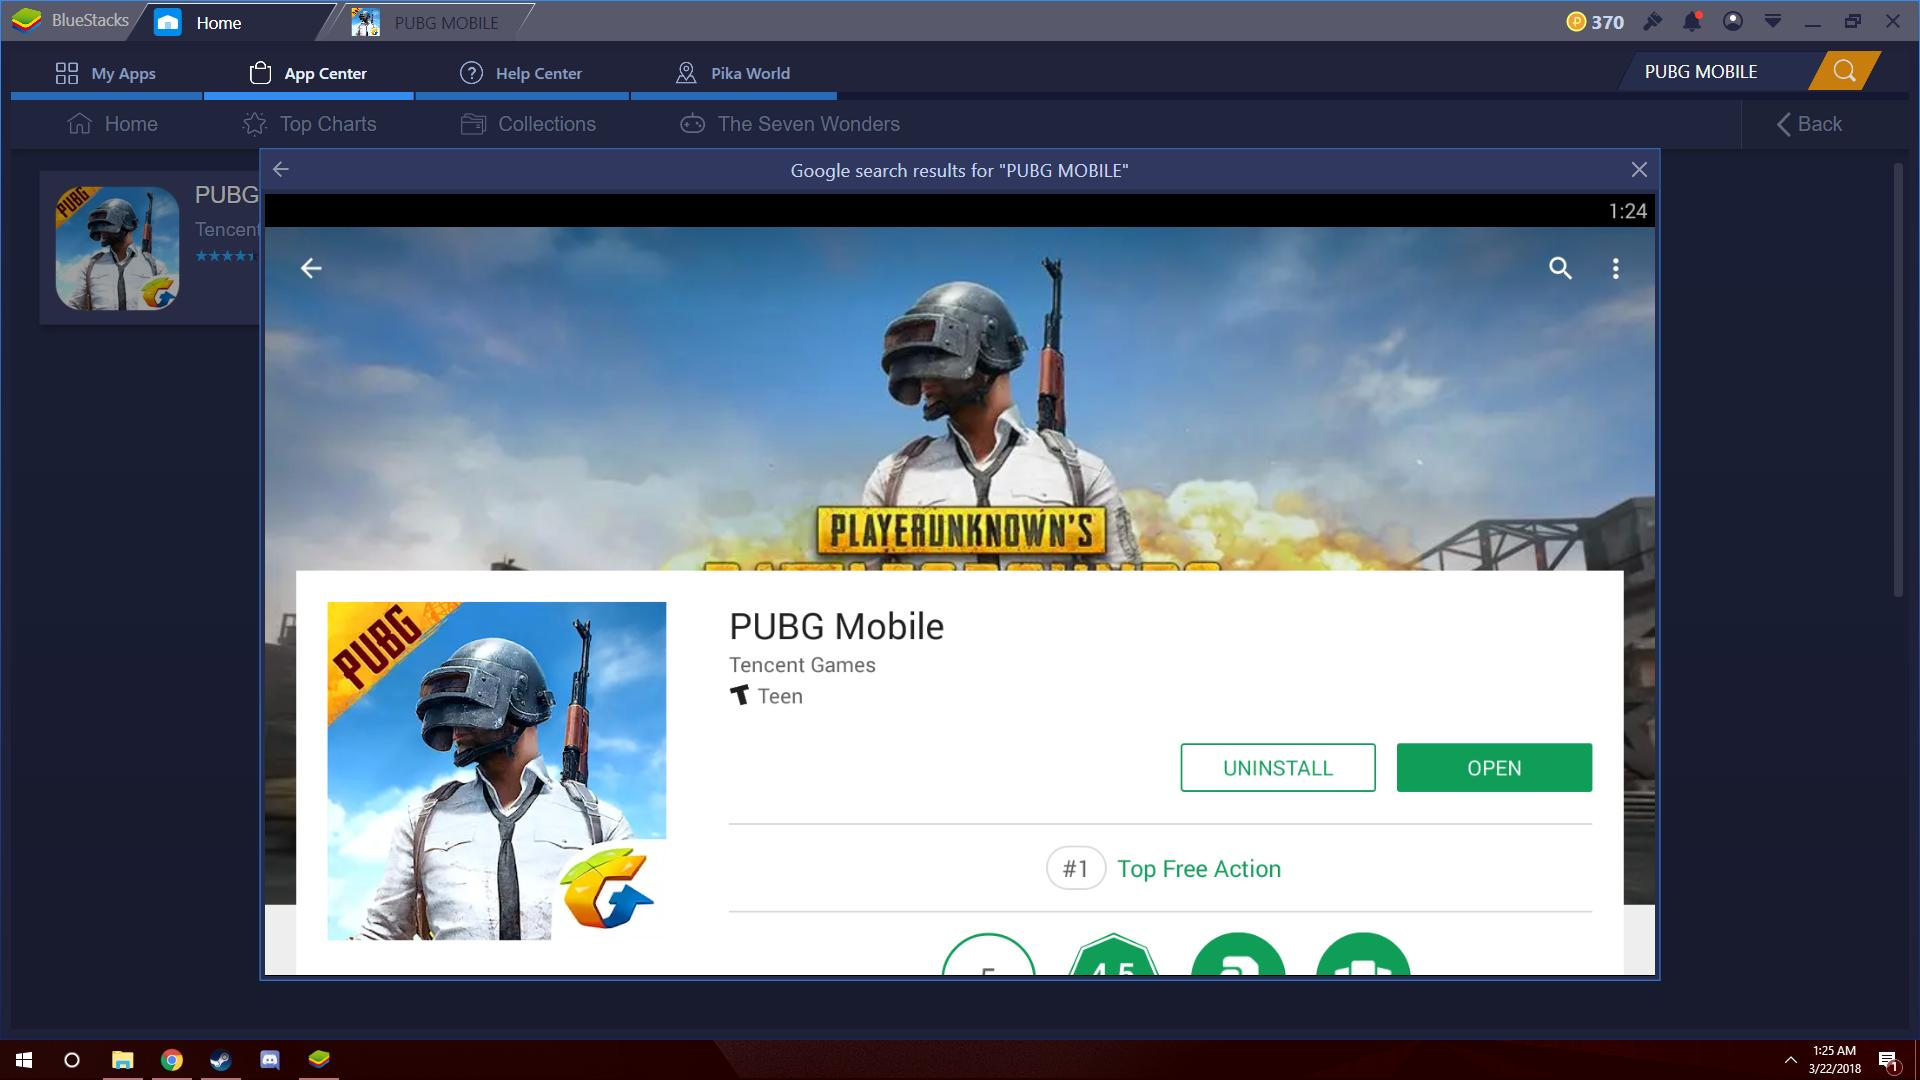 PUBG - How to Play PUBG Mobile on PC